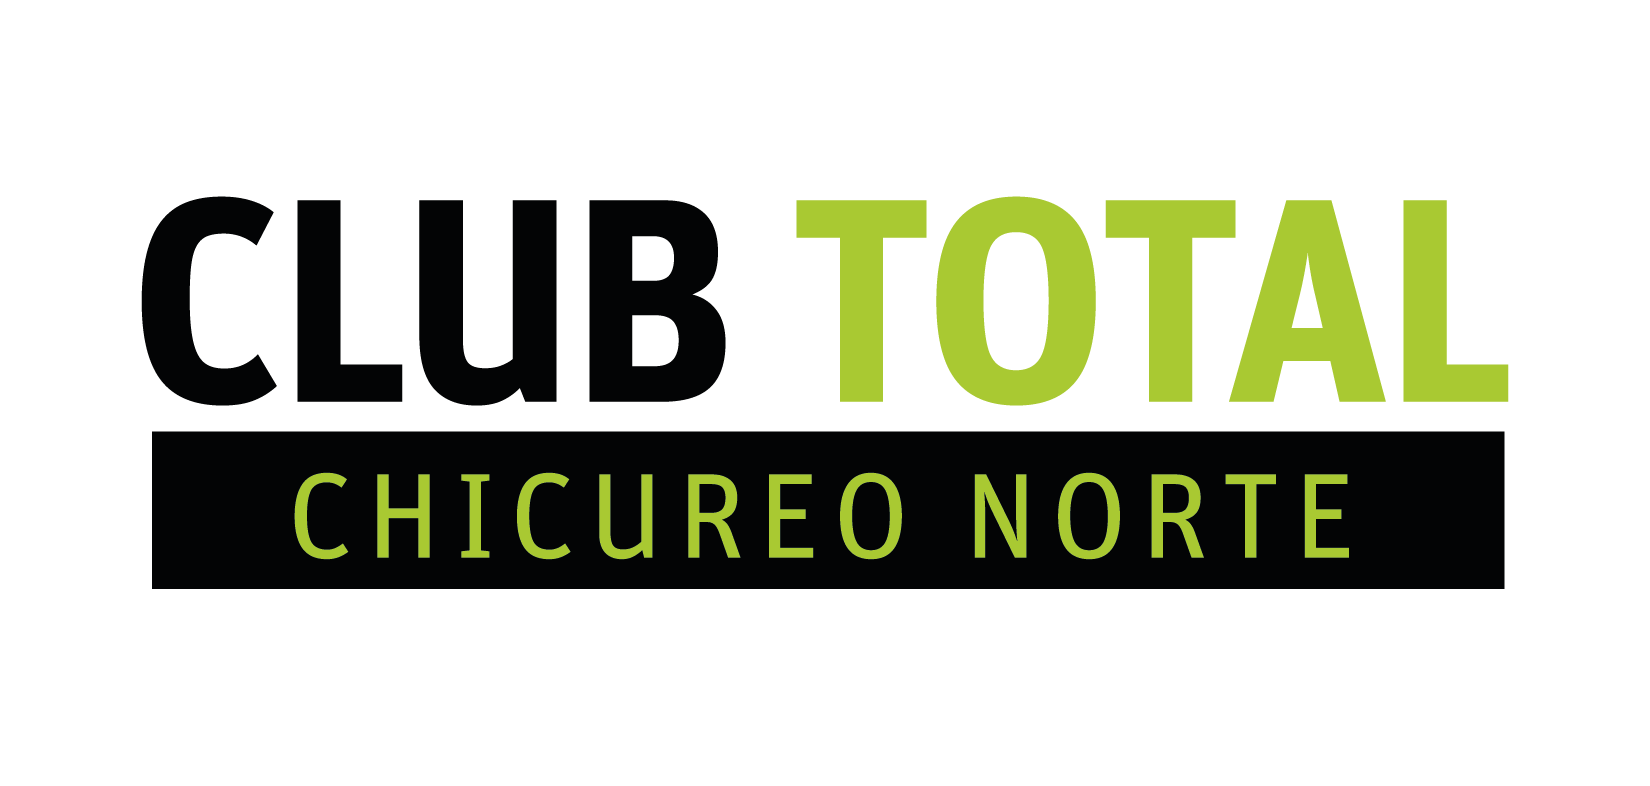 Copa Club Total Chicureo Norte F8 Ss